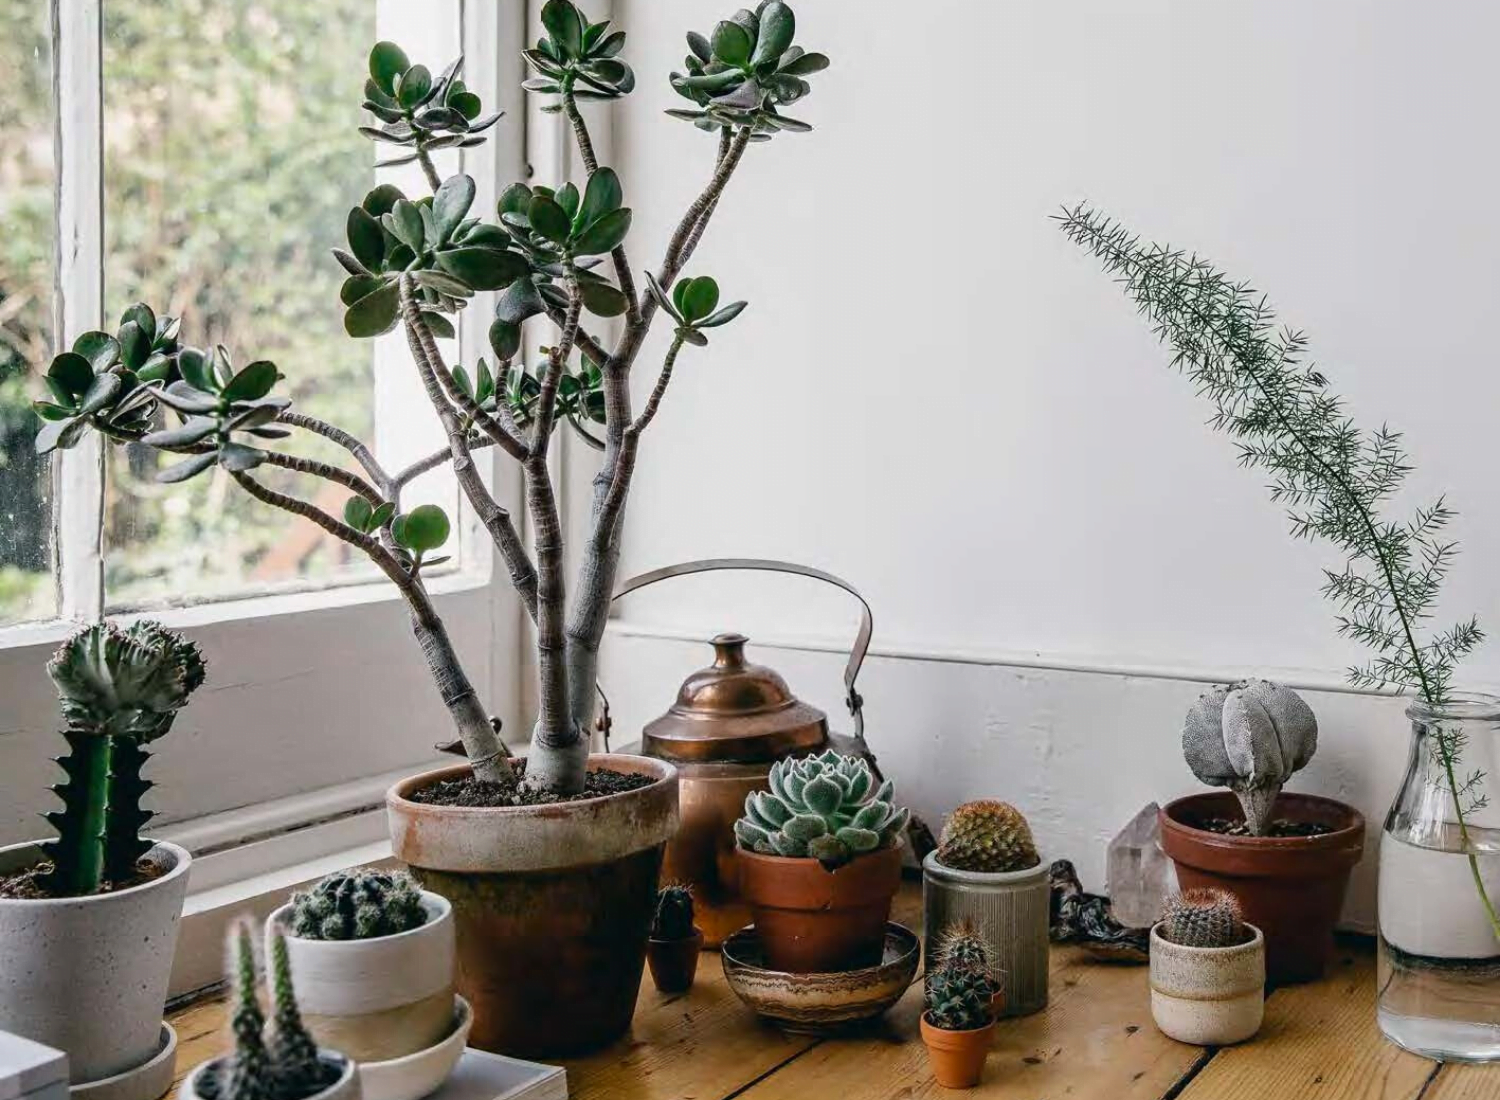 How To Take Care Of Your Succulents: 5 Important Tips